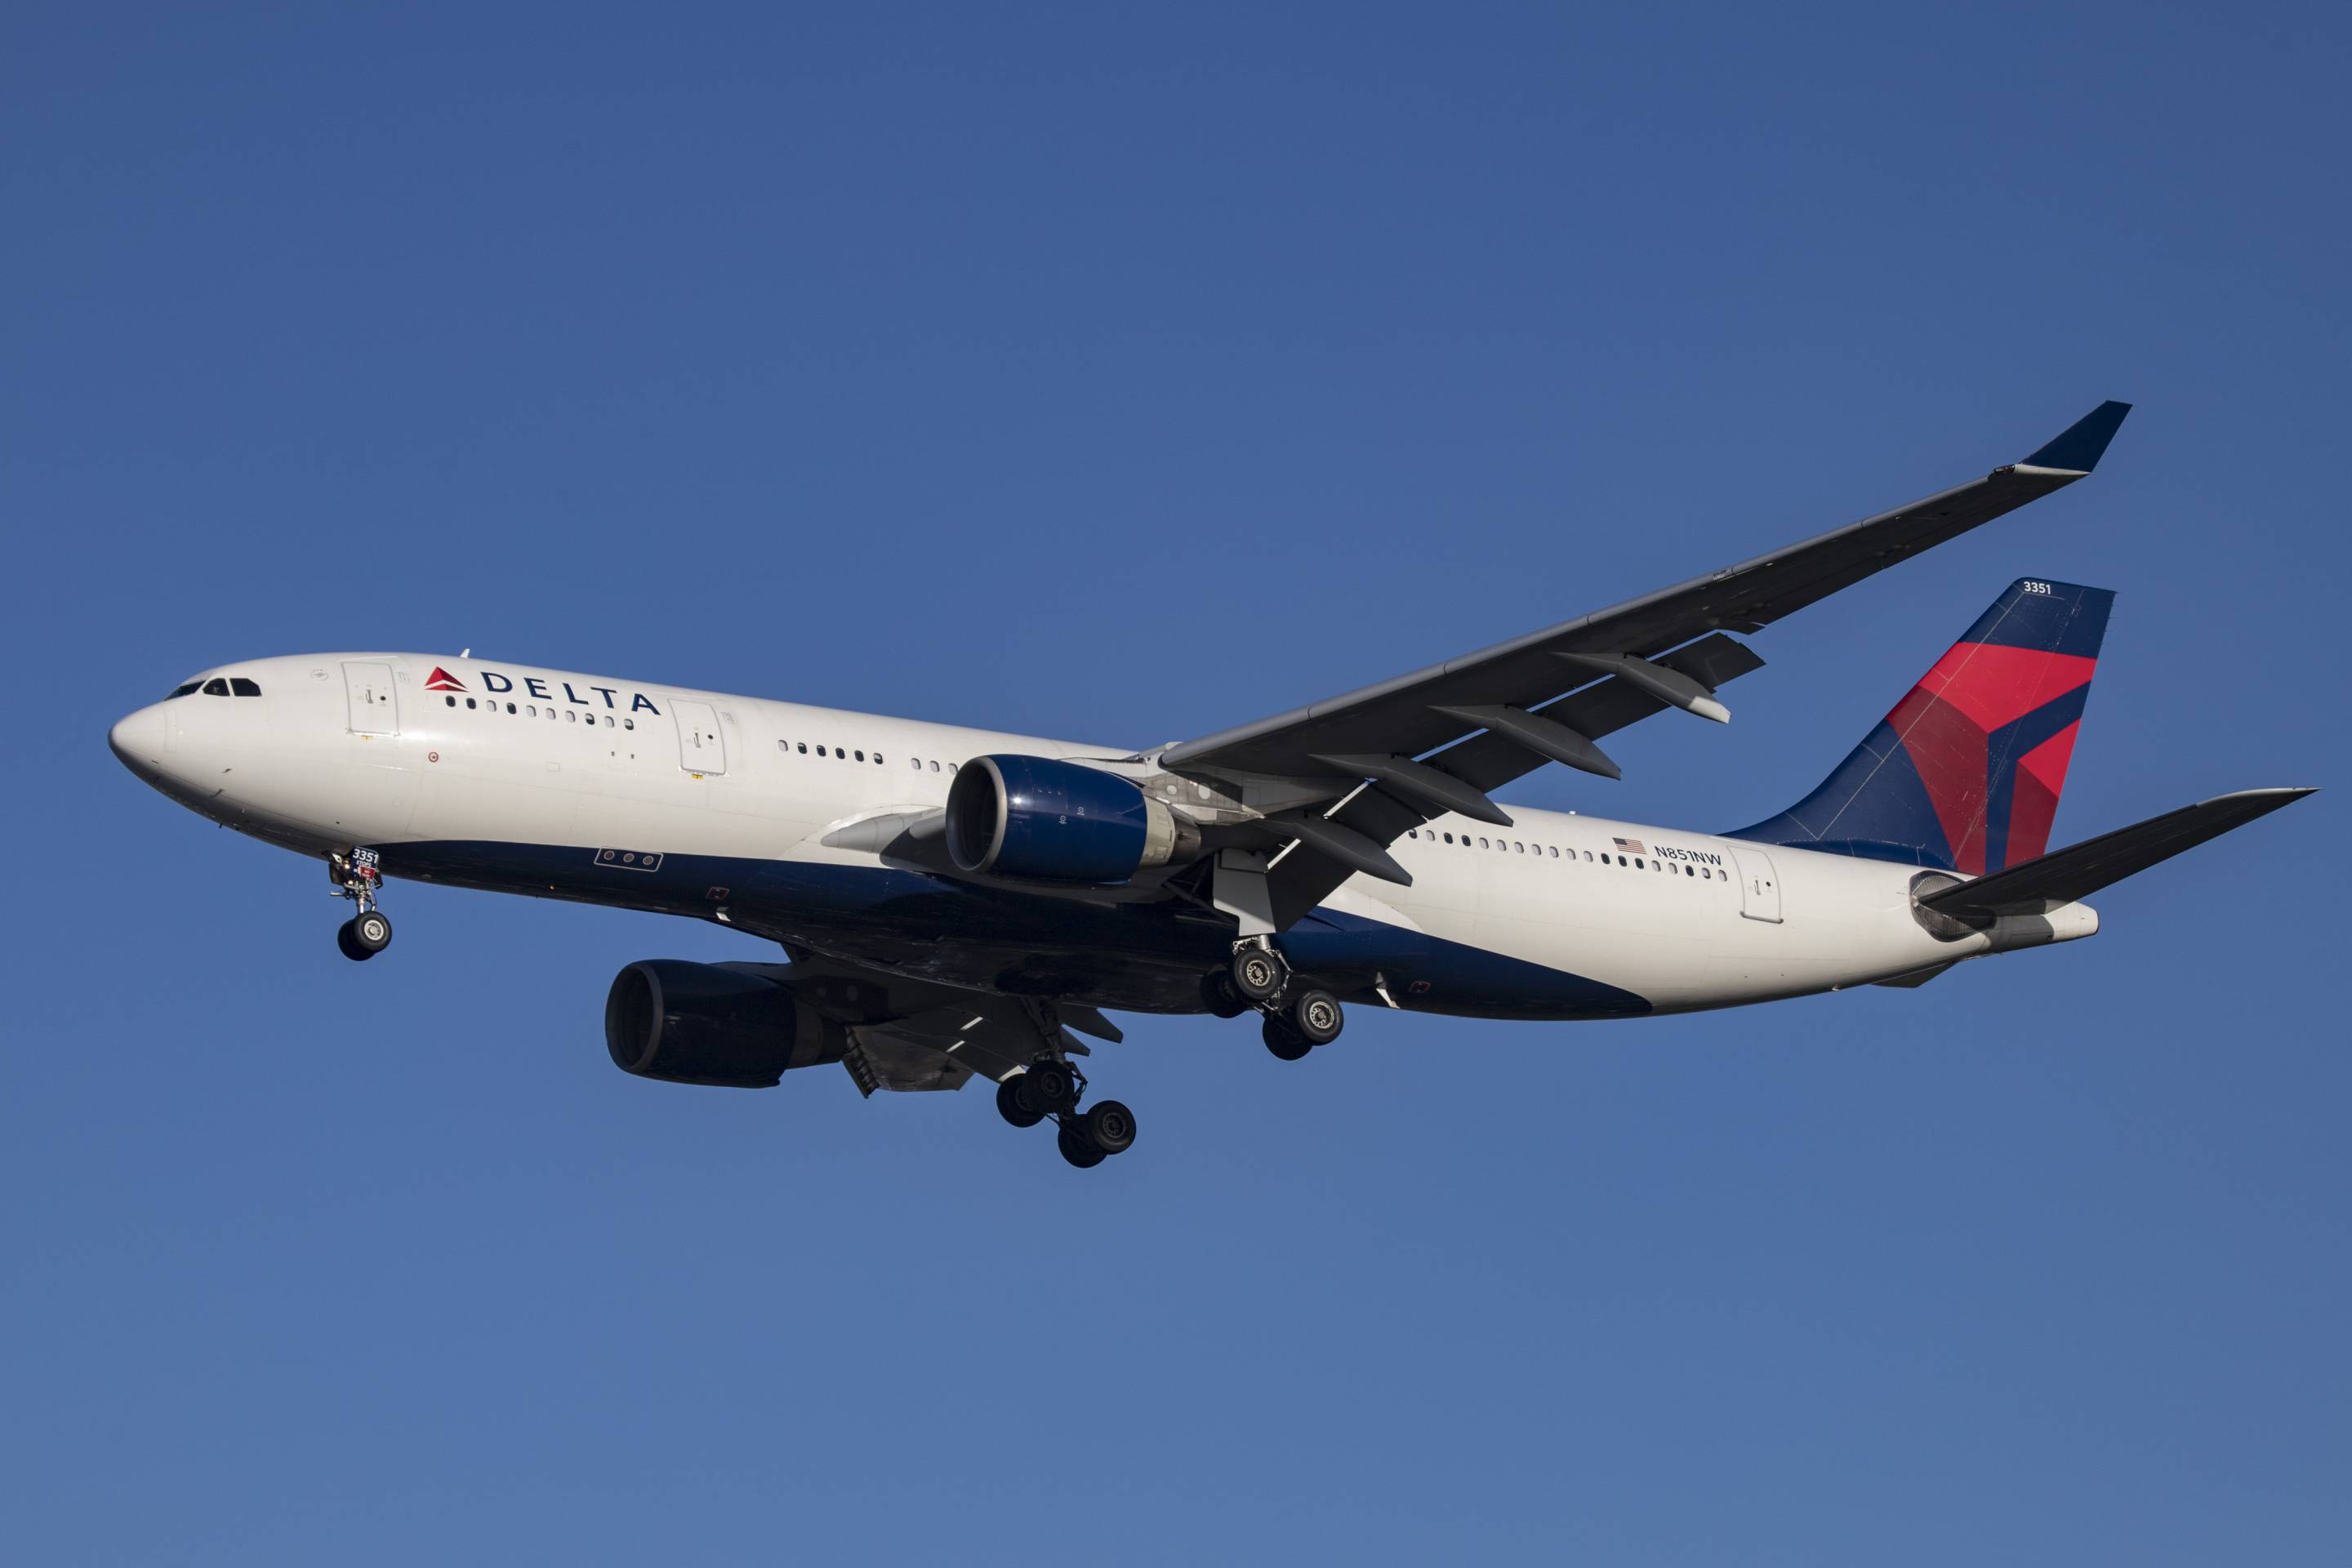 Delta Airlines Airbus A330-200 airplane with registration